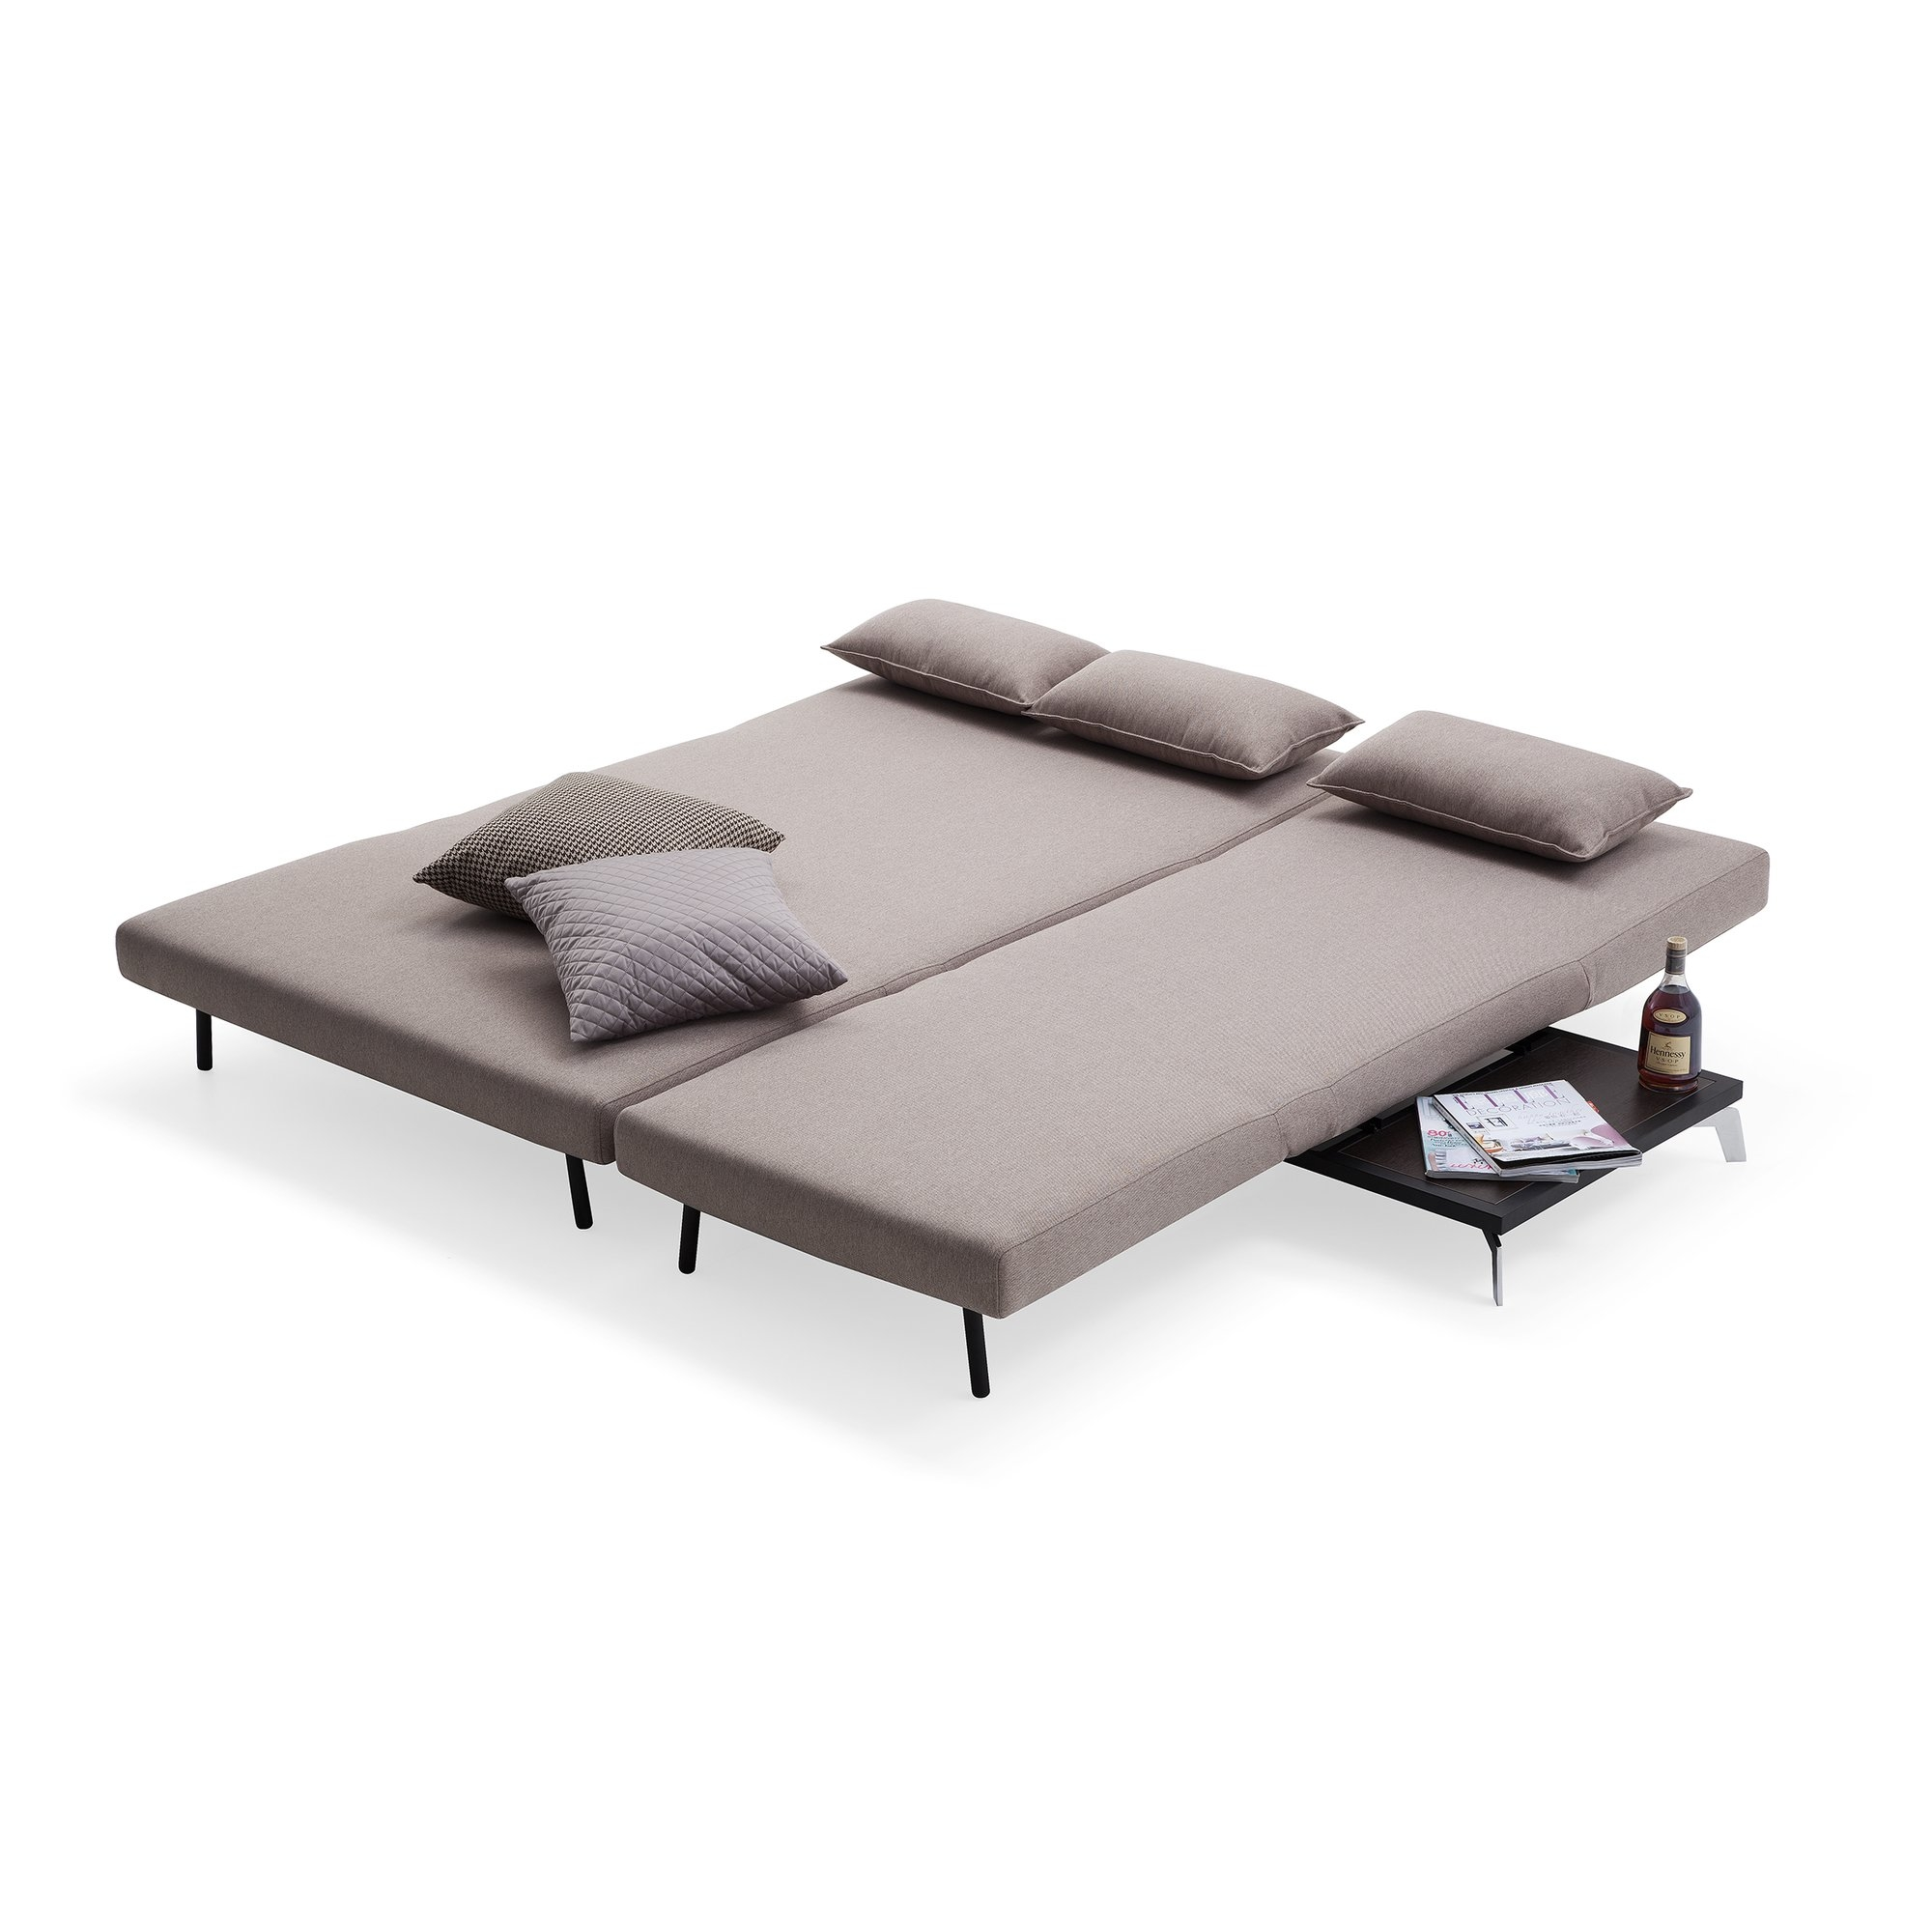 Modern Sleeper Sofas Sofa Beds Allmodern Pertaining To 70 Sleeper Sofa (Image 14 of 15)